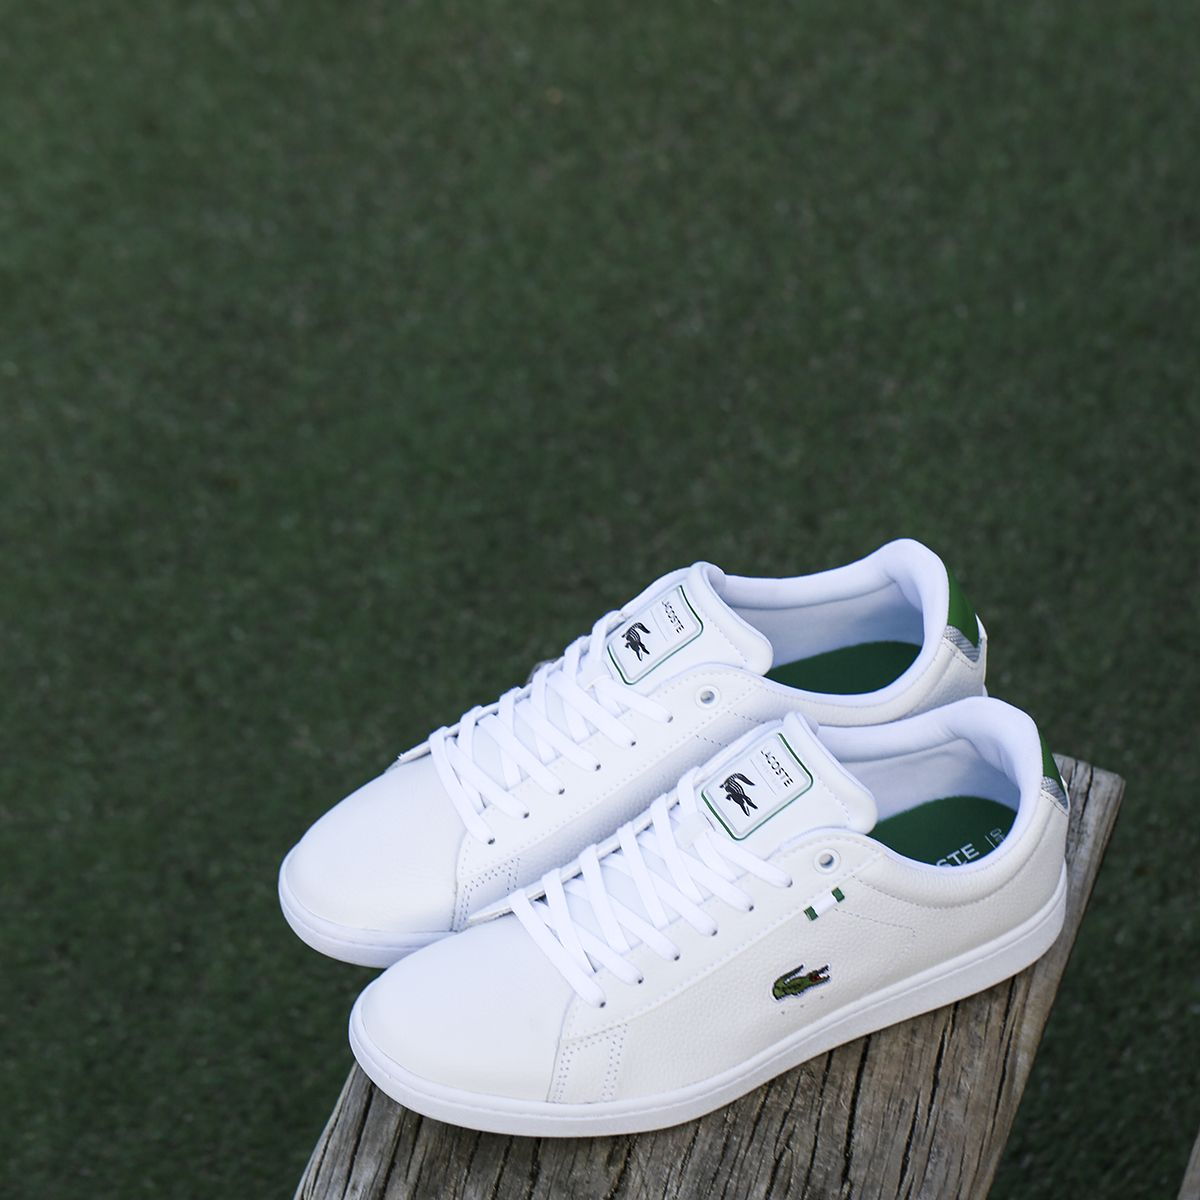 af4d0860d6 Feeling like hitting the tennis court in the Lacoste Carnaby sneakers.  http://